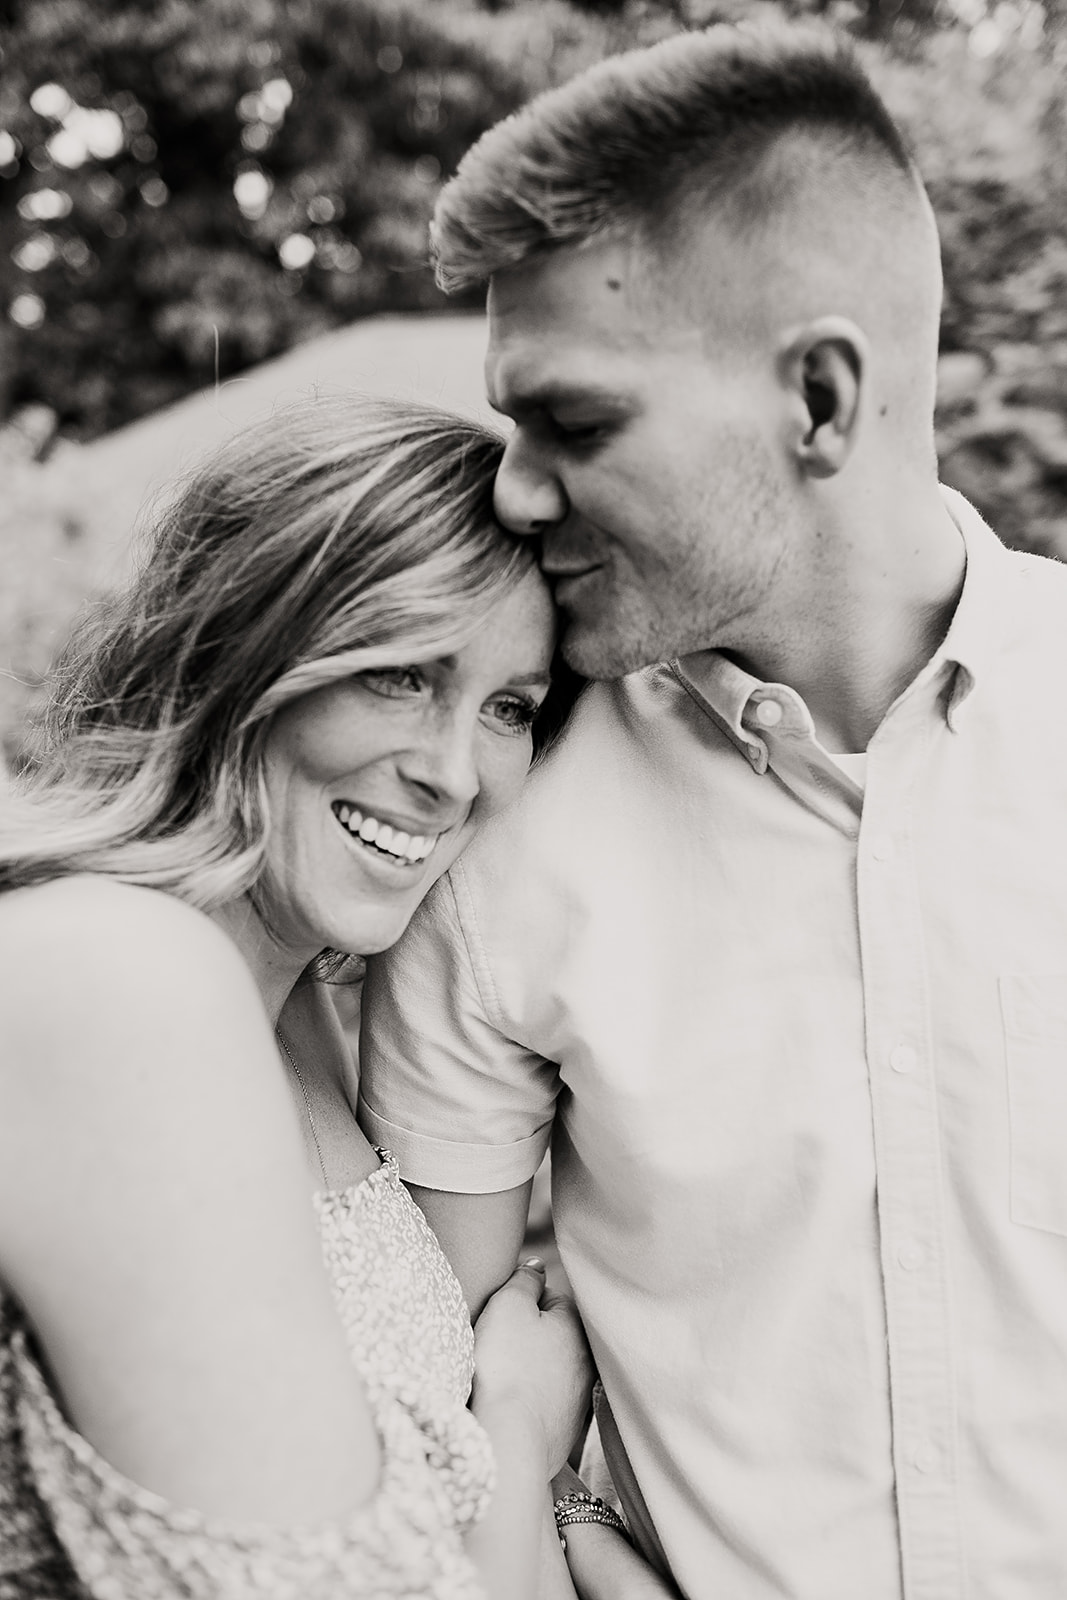 Casie_and_Sean_Maternity_session_at_cool_creek_park_in_Carmel_Indiana_by_Emily_Wehner-125.jpg